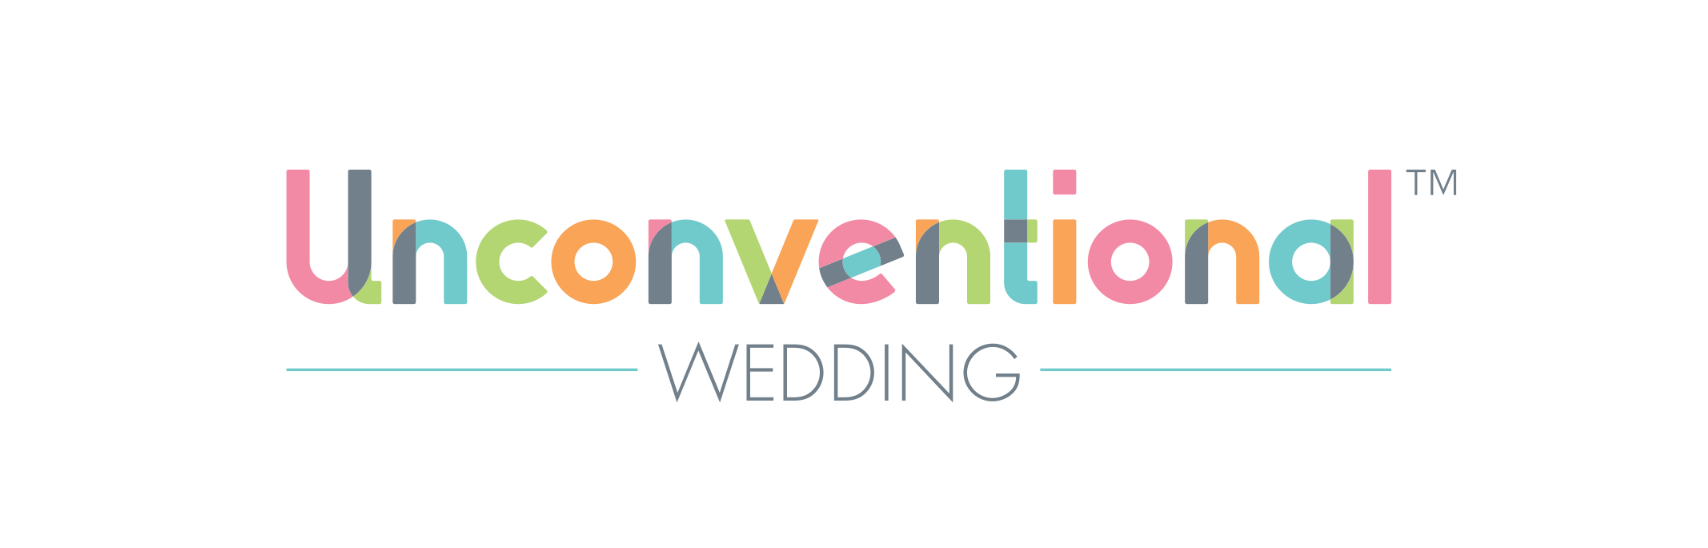 https://unconventionalwedding.co.uk/wp-content/uploads/2019/07/Unconventional-wedding-logo-with-trademark-alternative-wedding-blog-and-directory.png